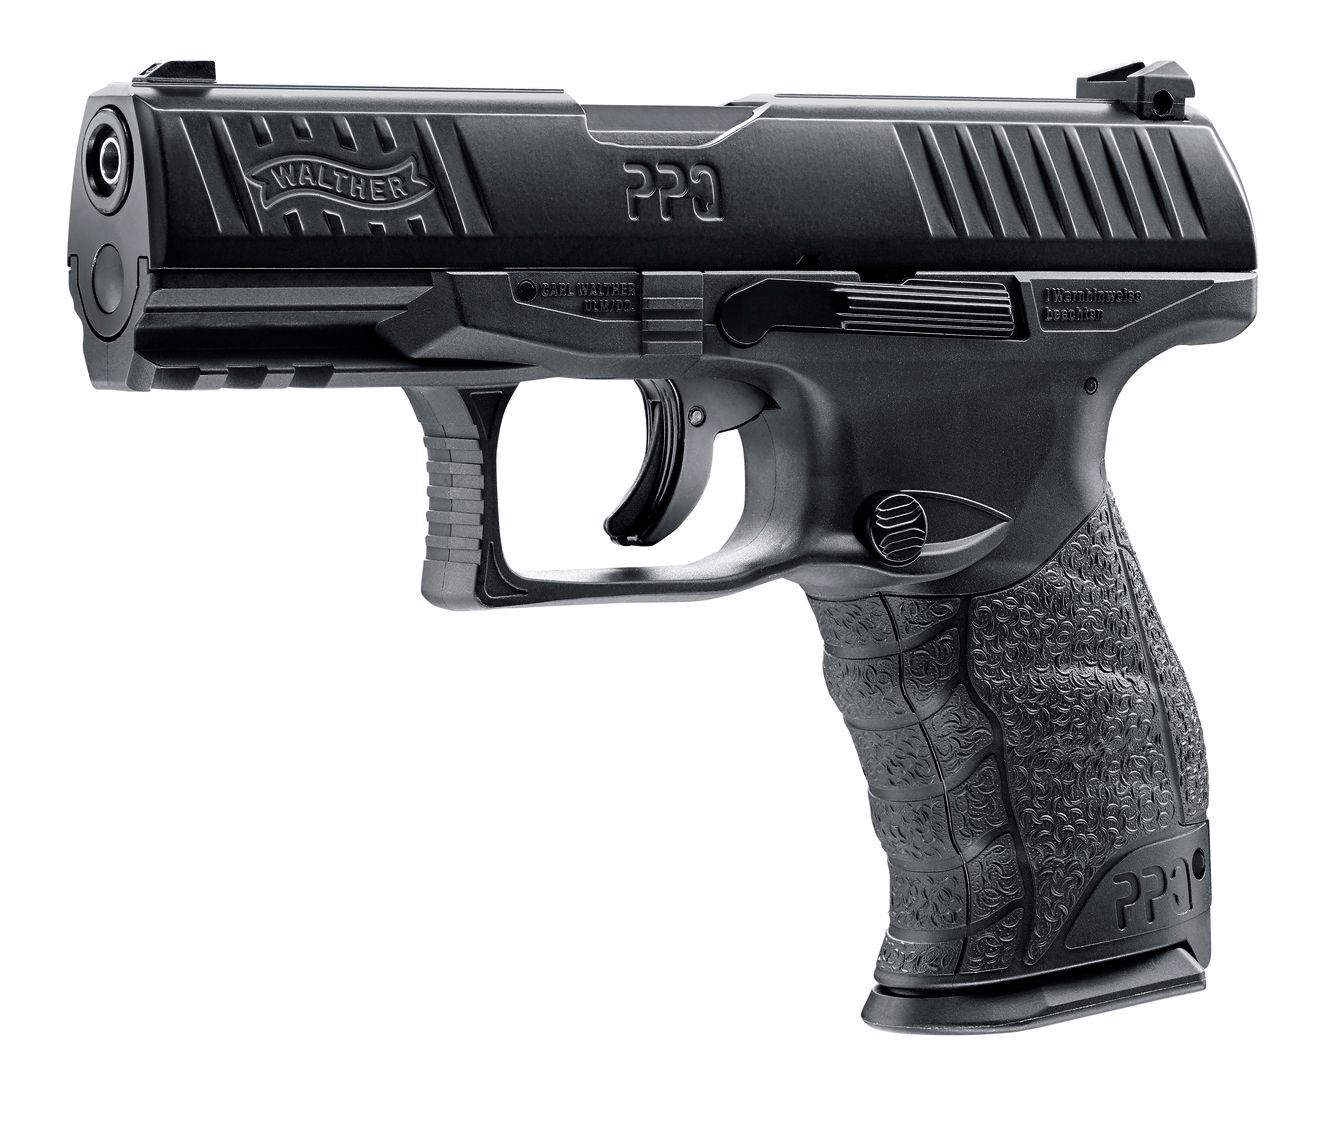 Pistolet a plomb Walther CP99 cal 4.5 - Umarex